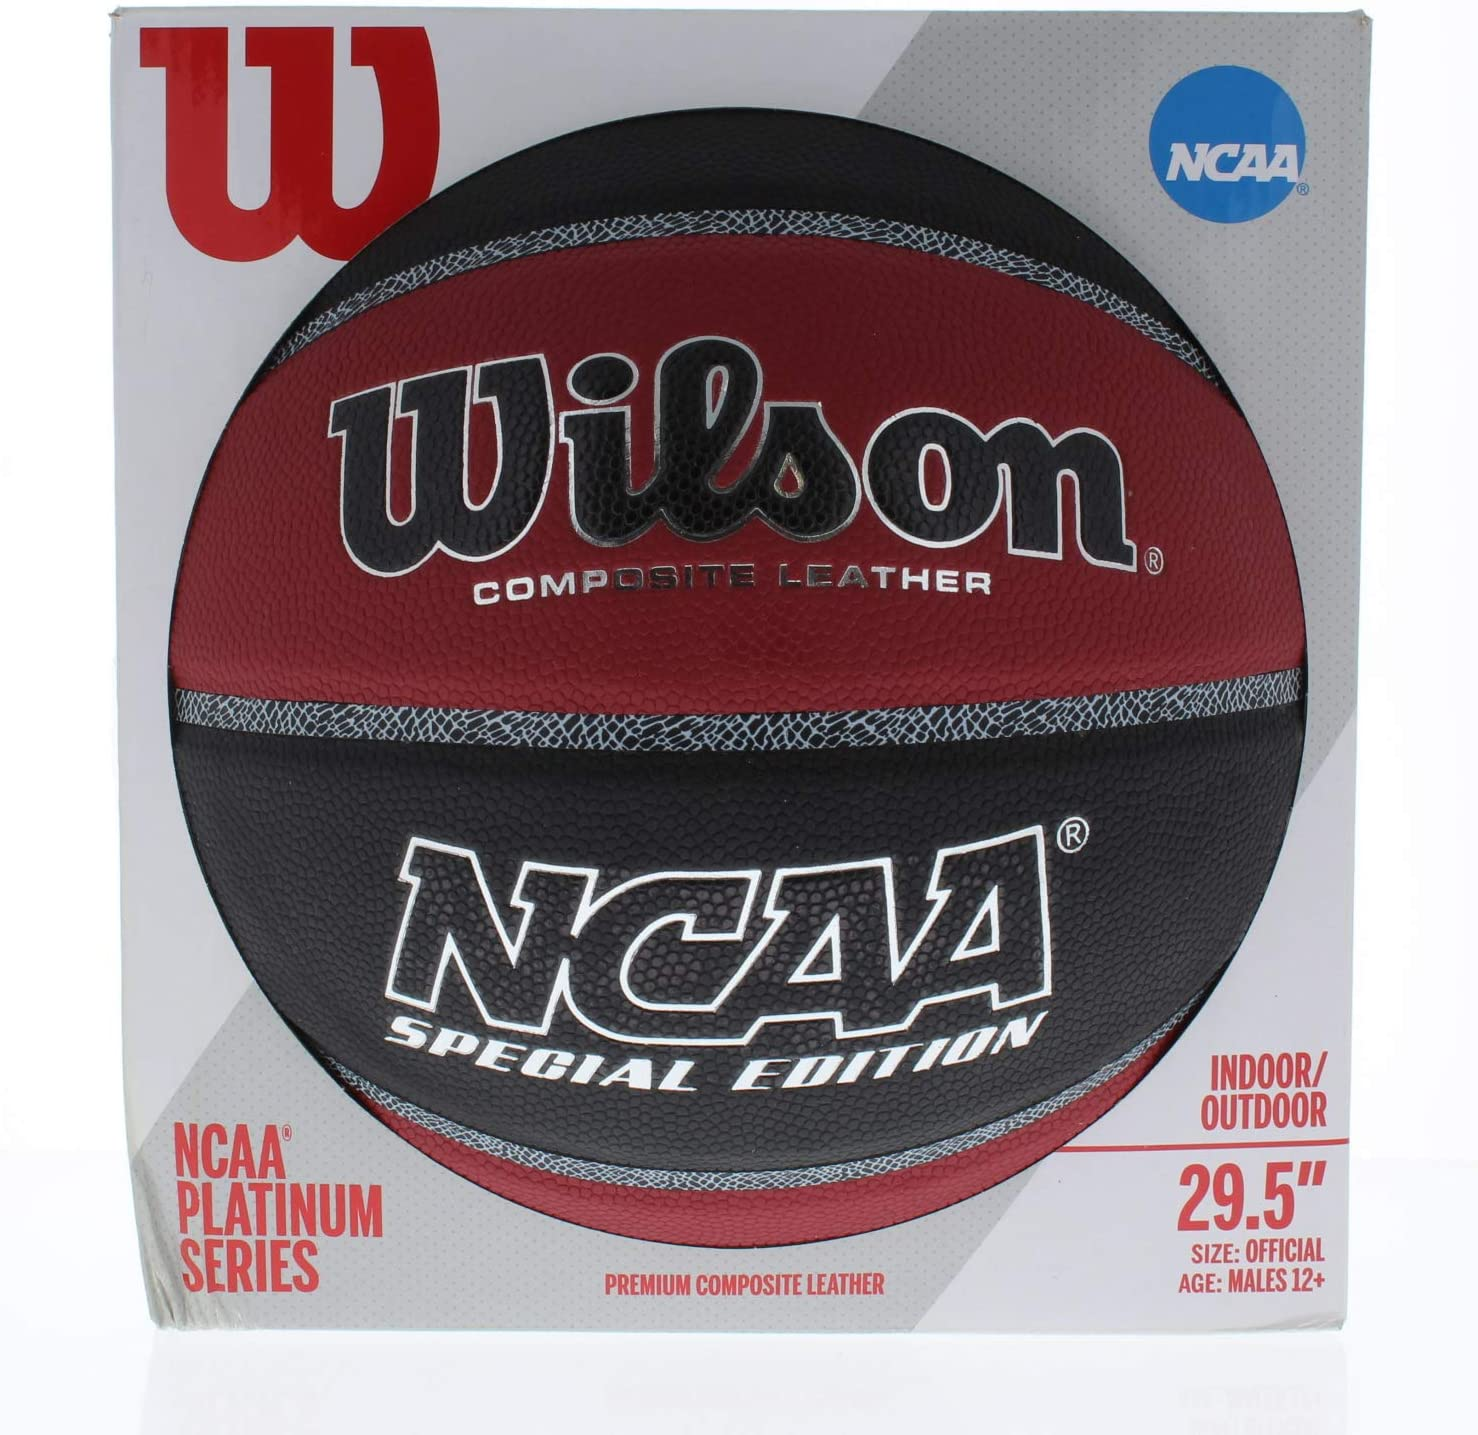 Wilson NCAA Special Edition Outdoor Popular standard Super sale period limited Composit Indoor Basketball